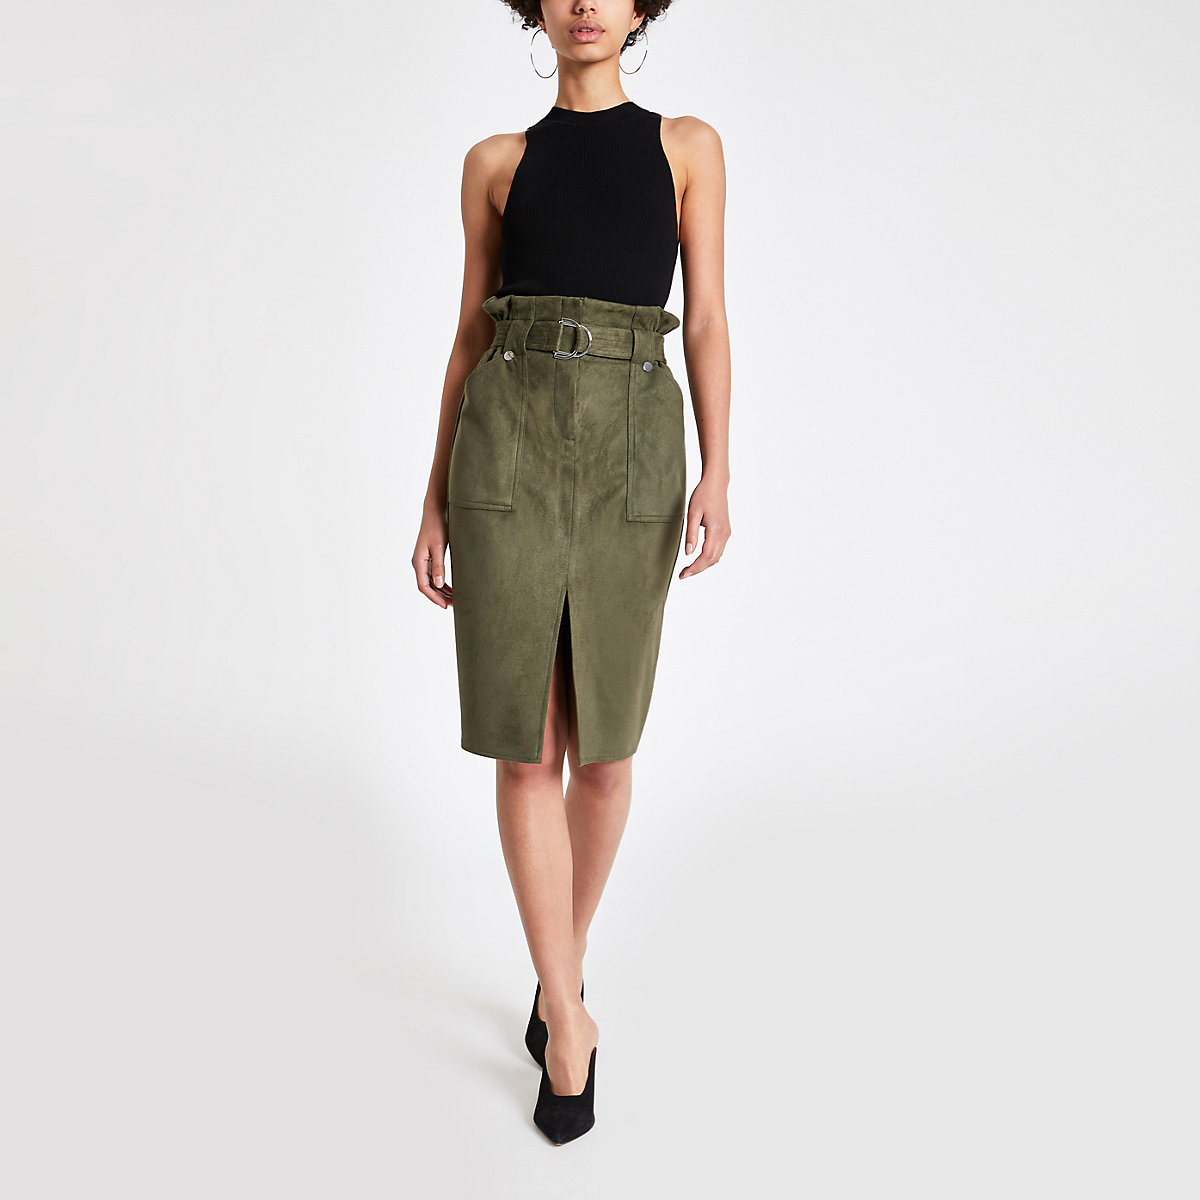 Khaki faux suede paperbag pencil skirt